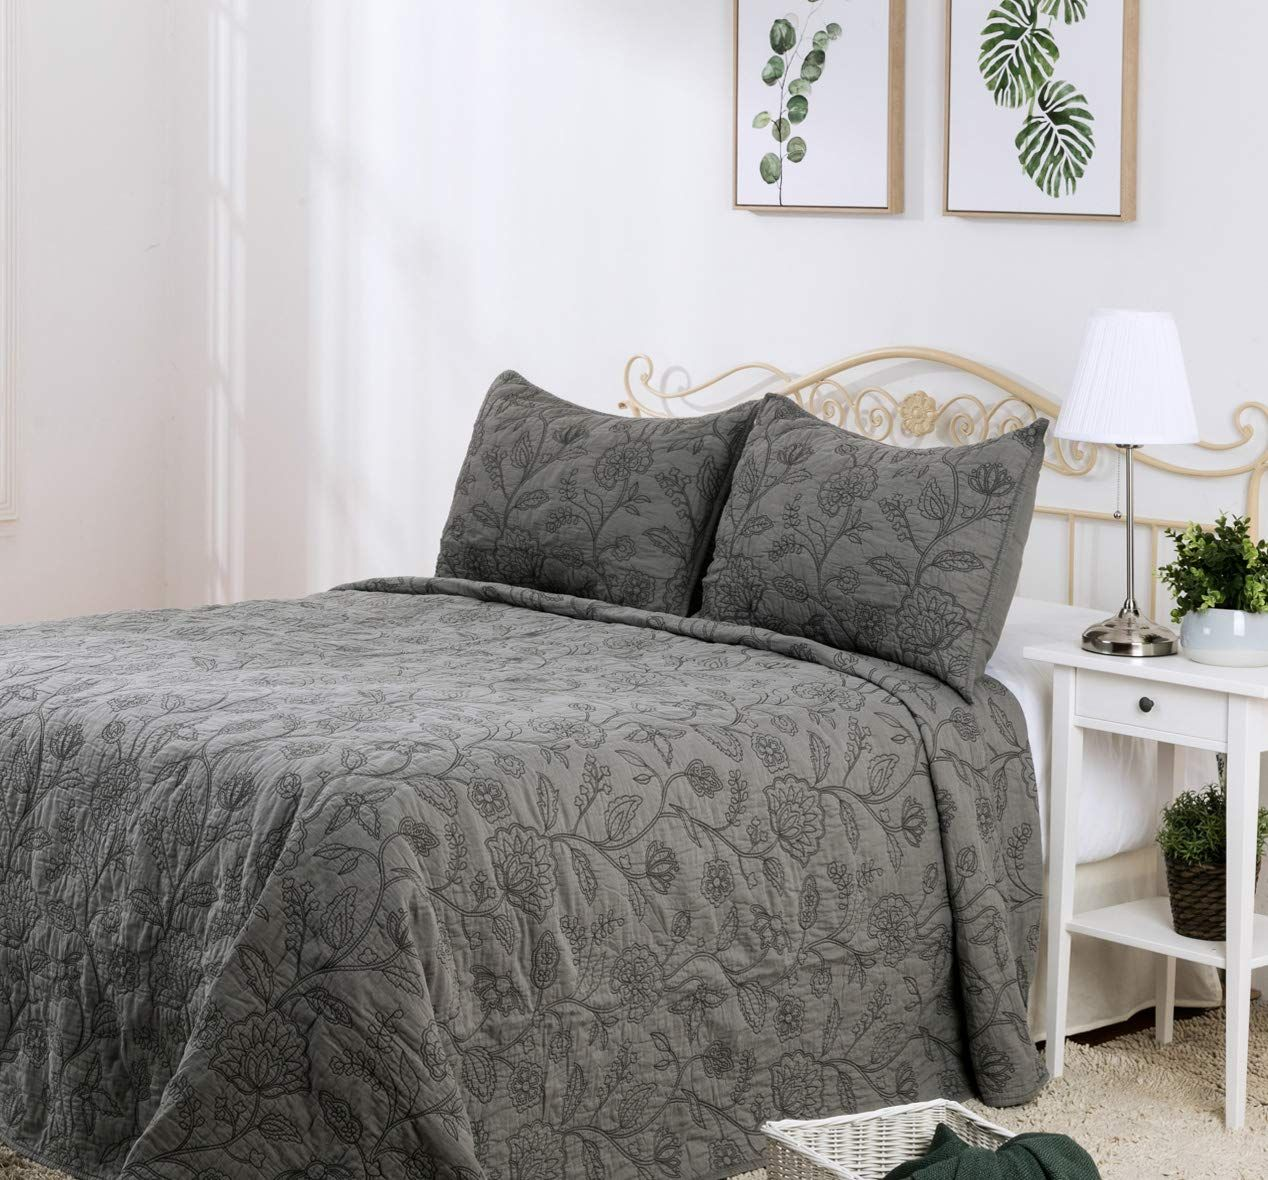 Elegant Life Reversible Cotton Vintage Embroidered Bedding Quilt Queen Size 90a A X 95a A Gray You Can Find Mo Embroidered Bedding Quilt Bedding Bed